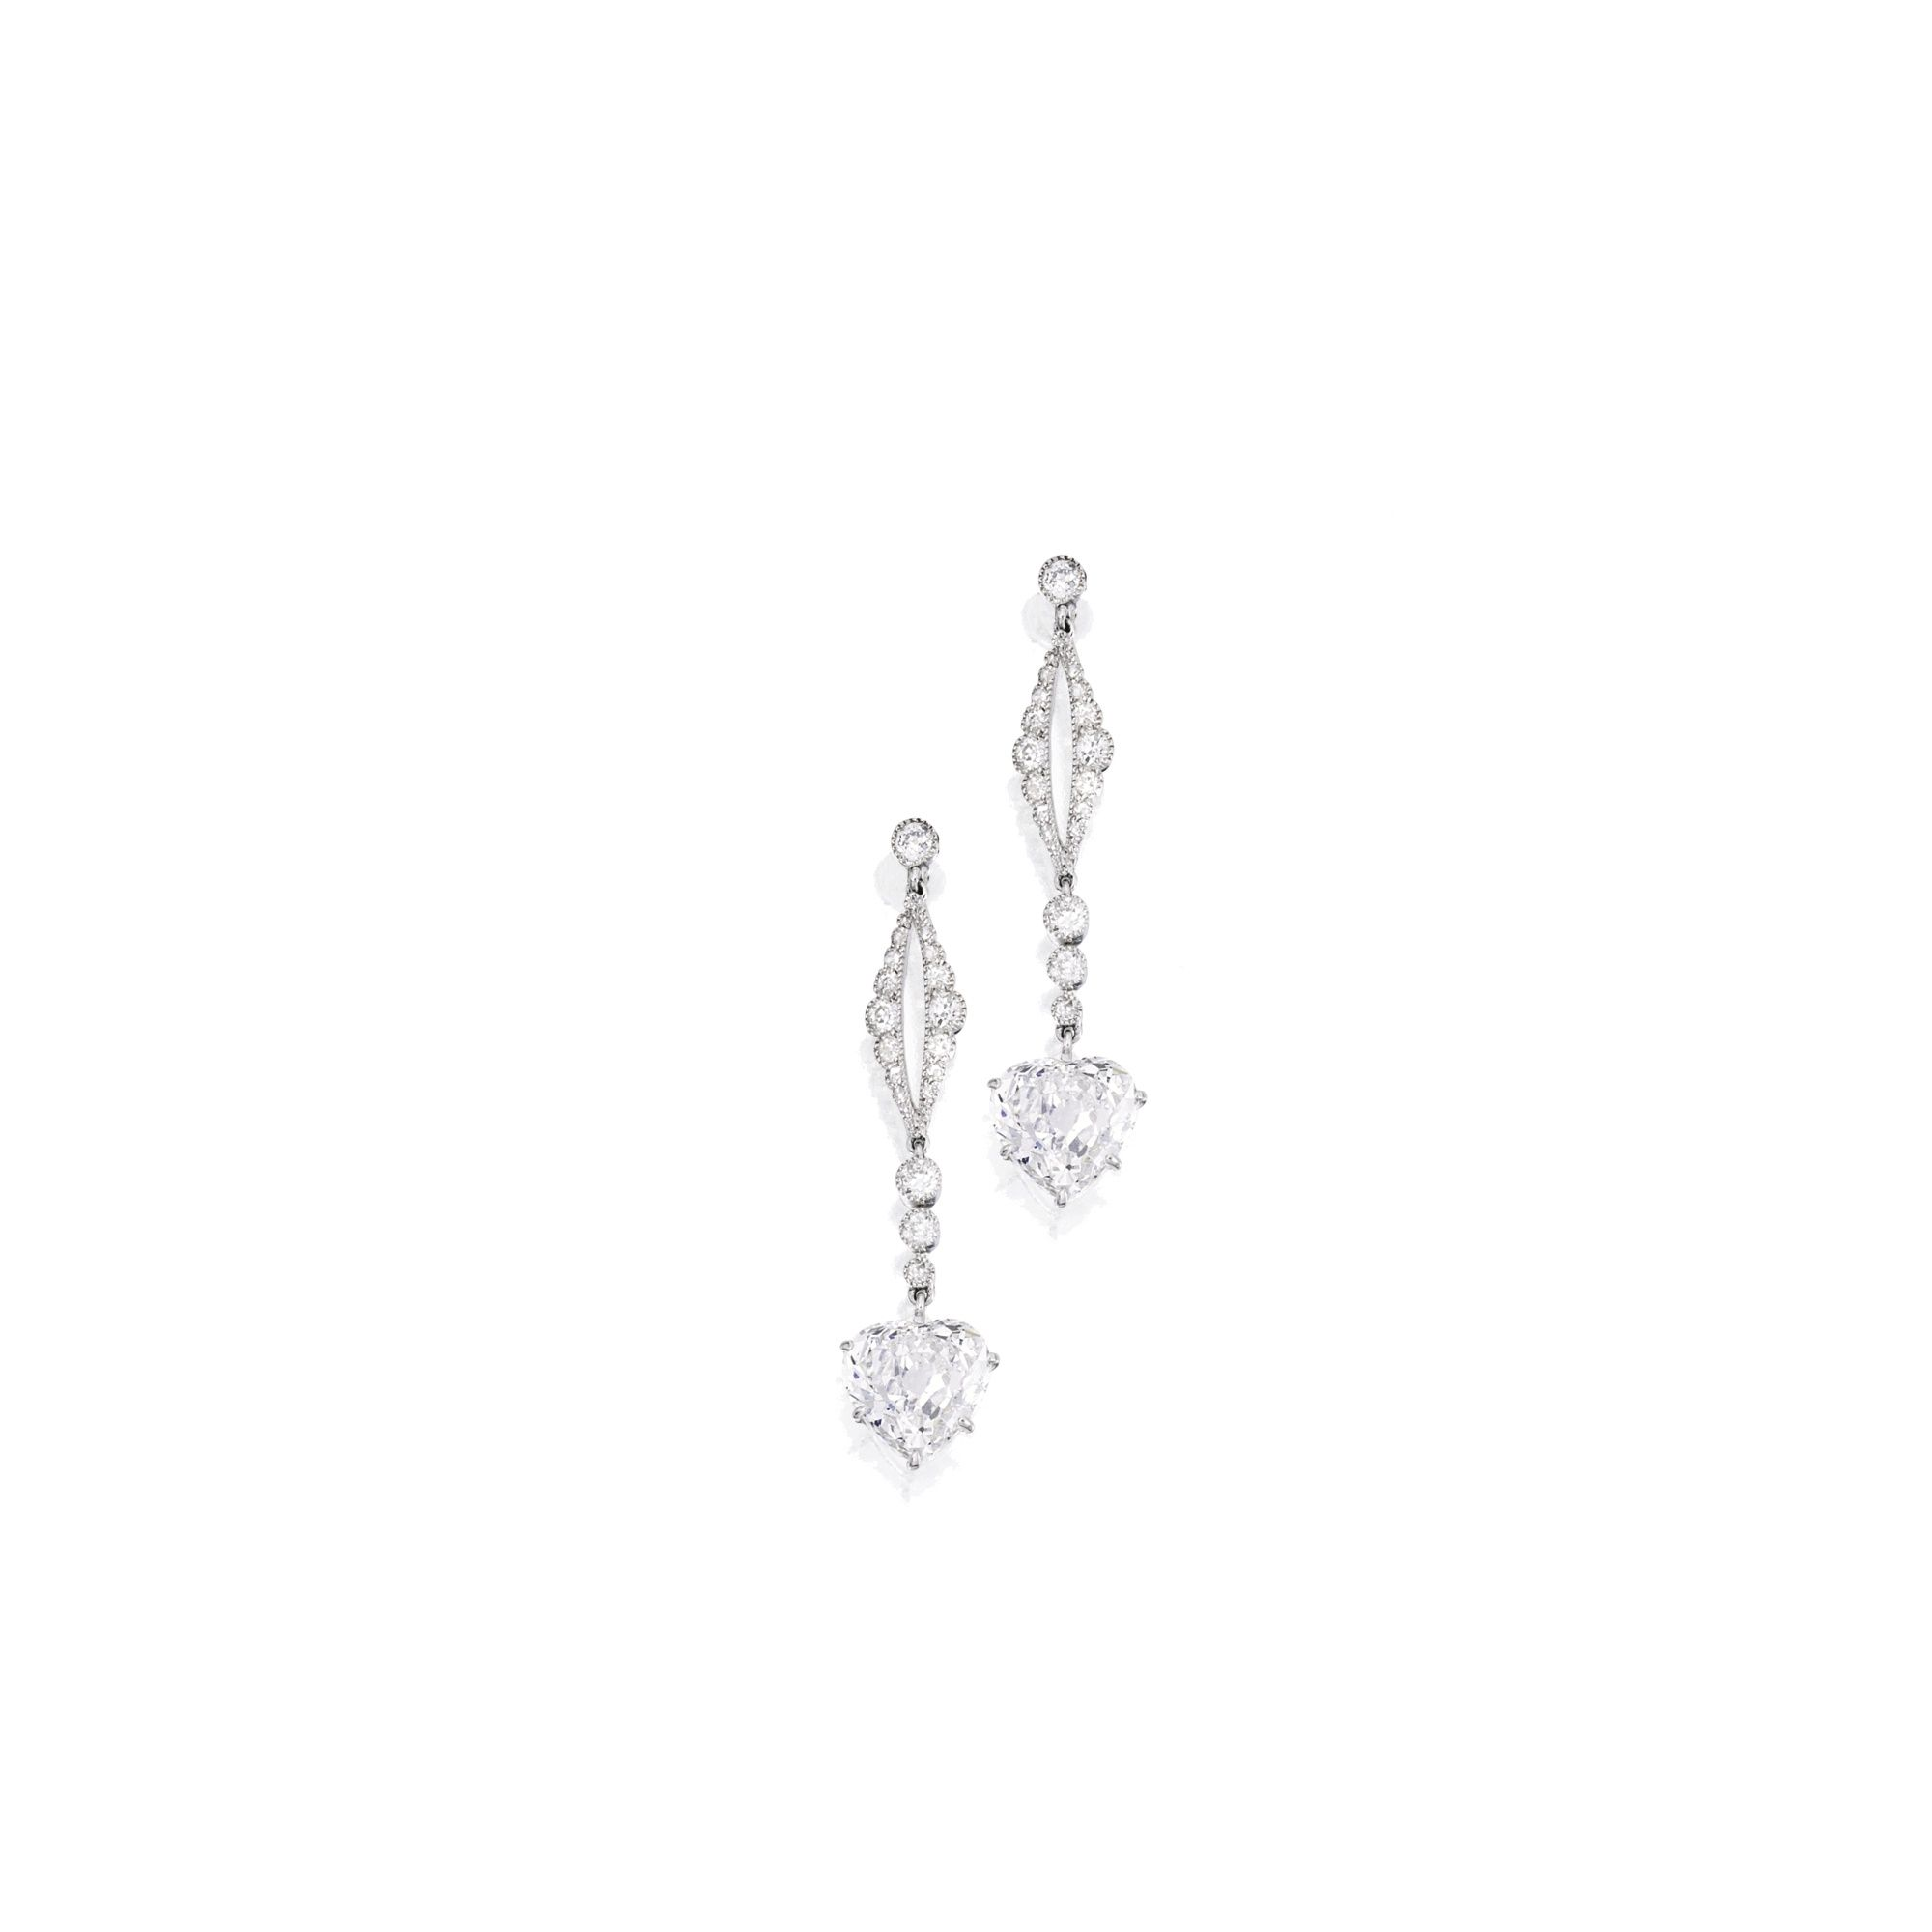 Pair of platinum and diamond pendantearrings the heartshaped